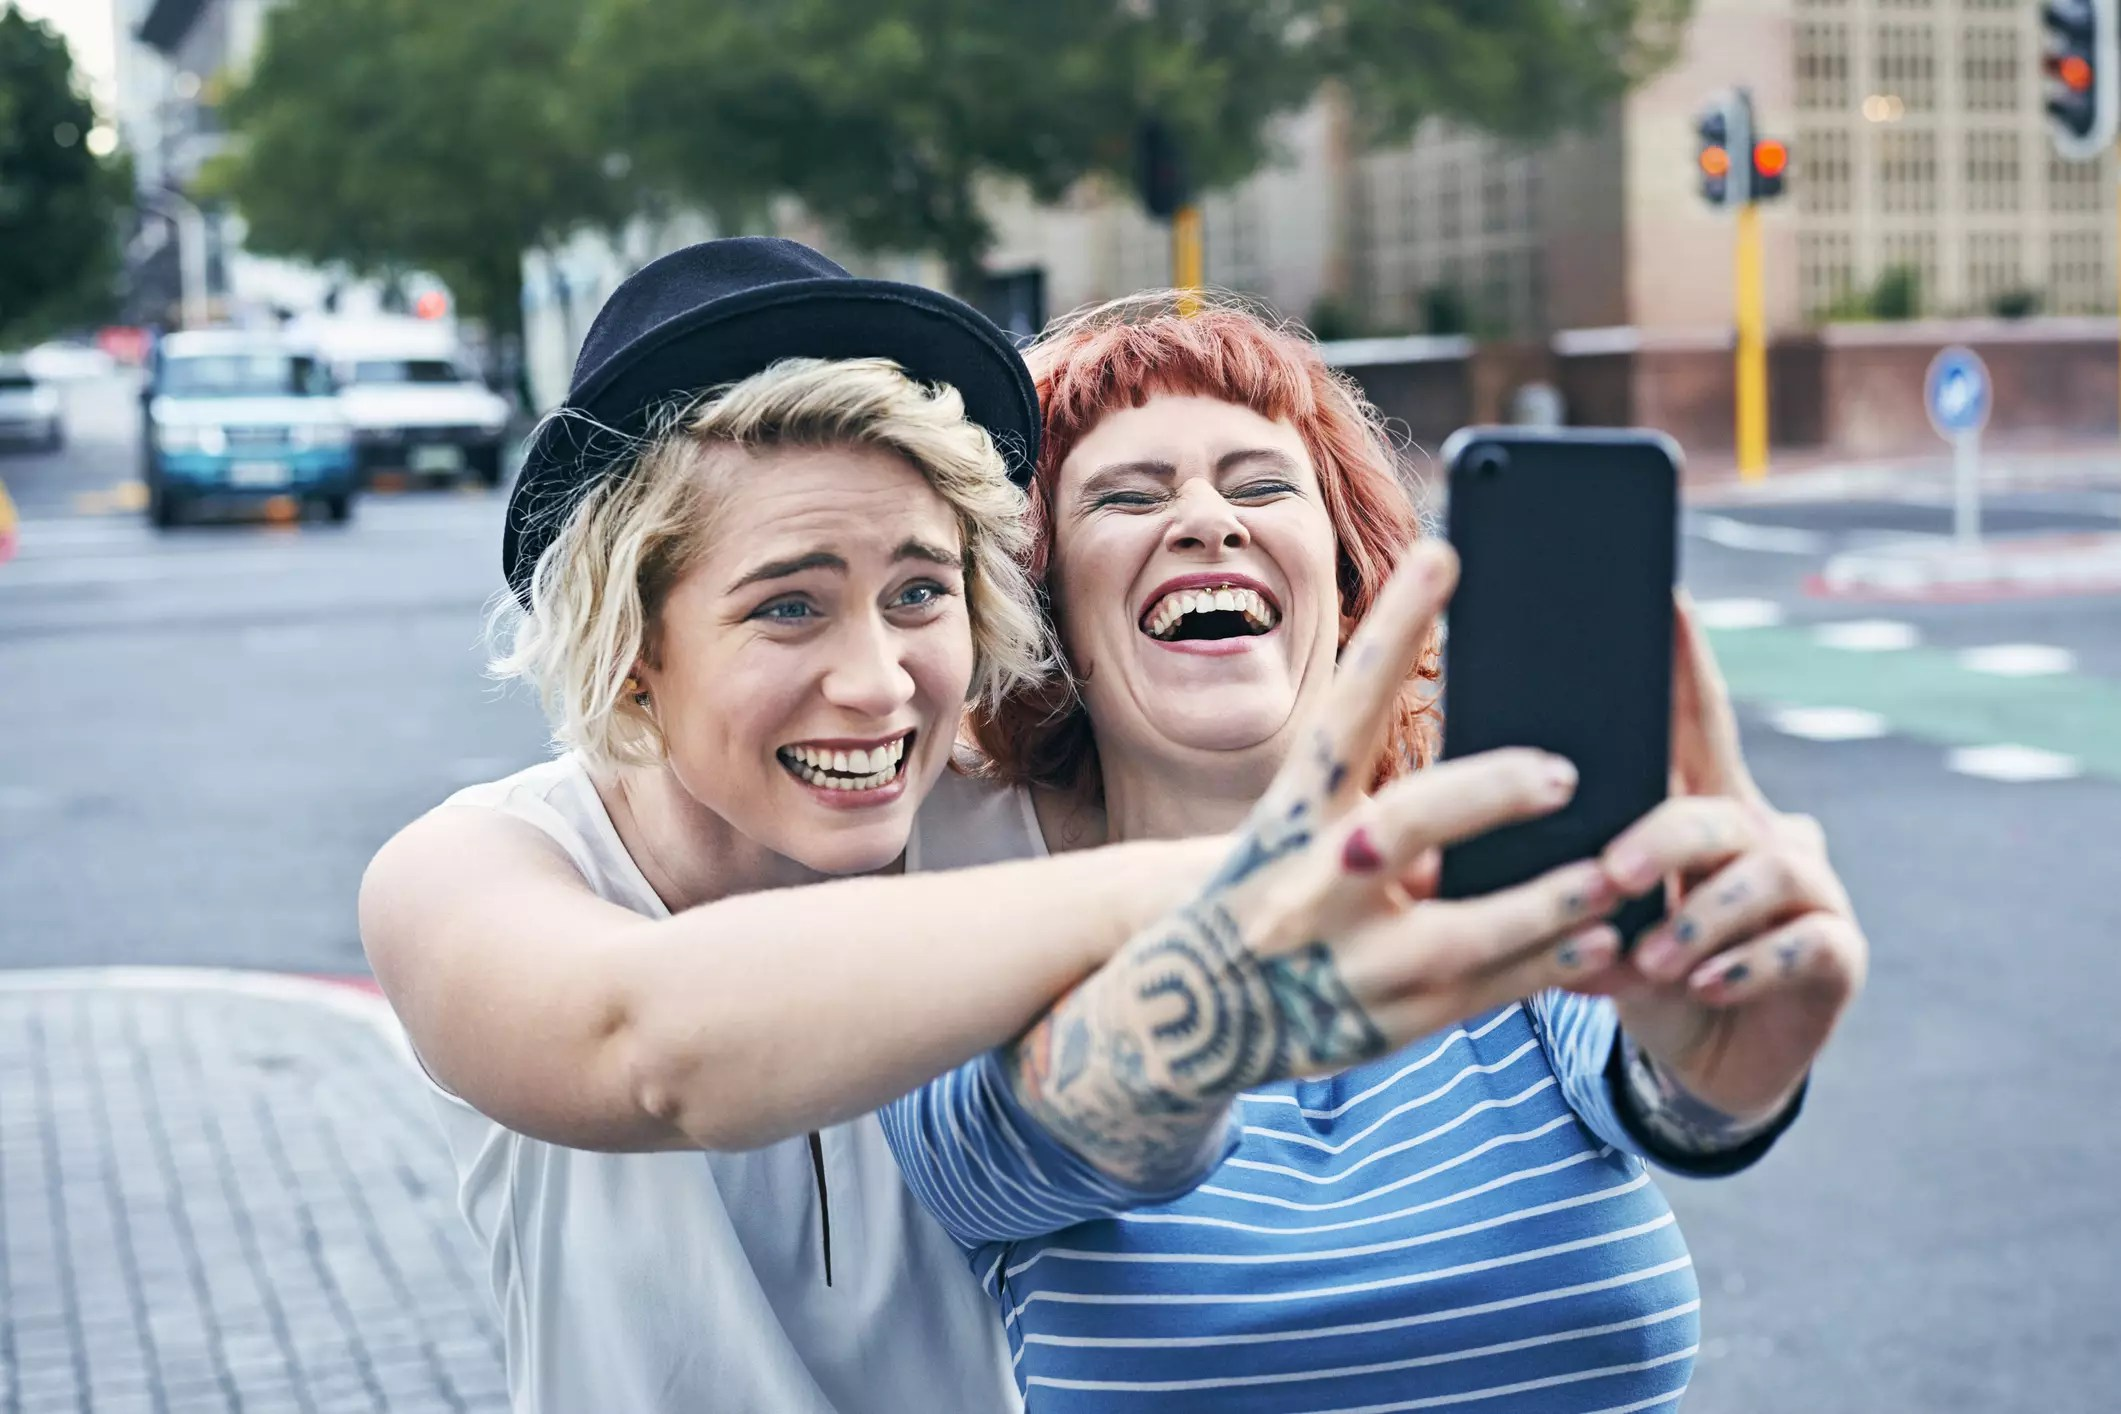 An image of two women laughing while taking a selfie